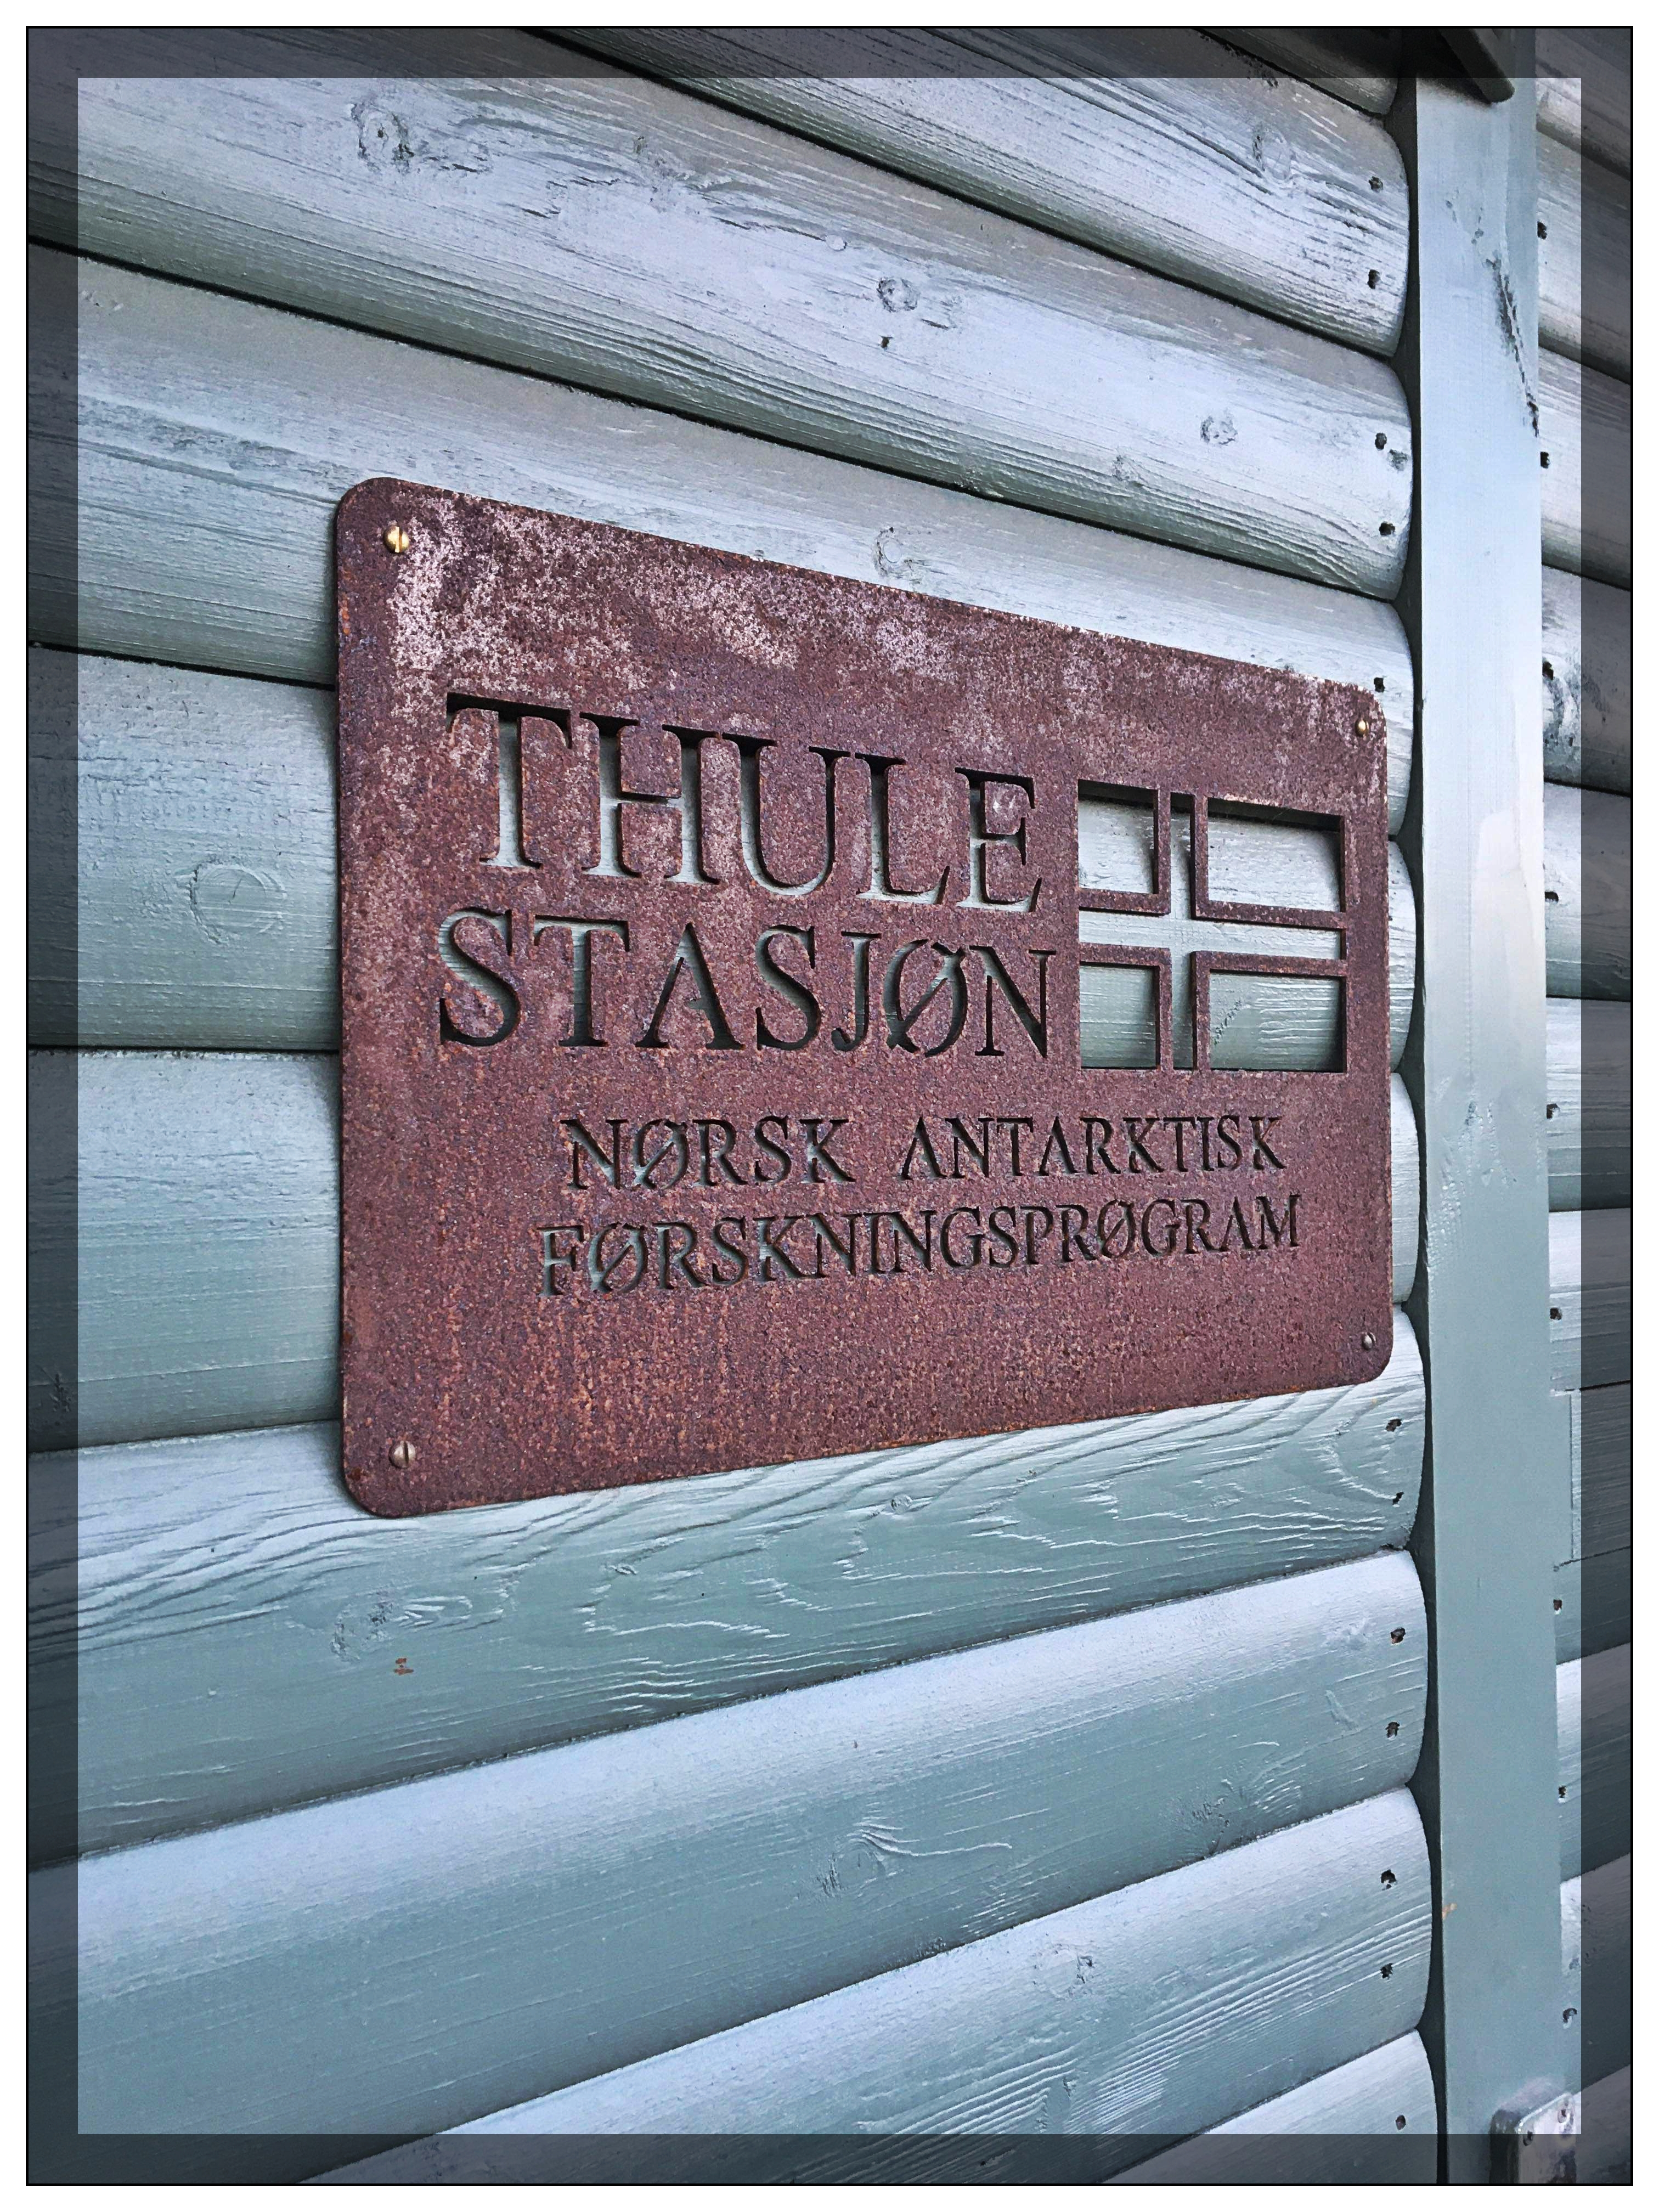 Thule Station